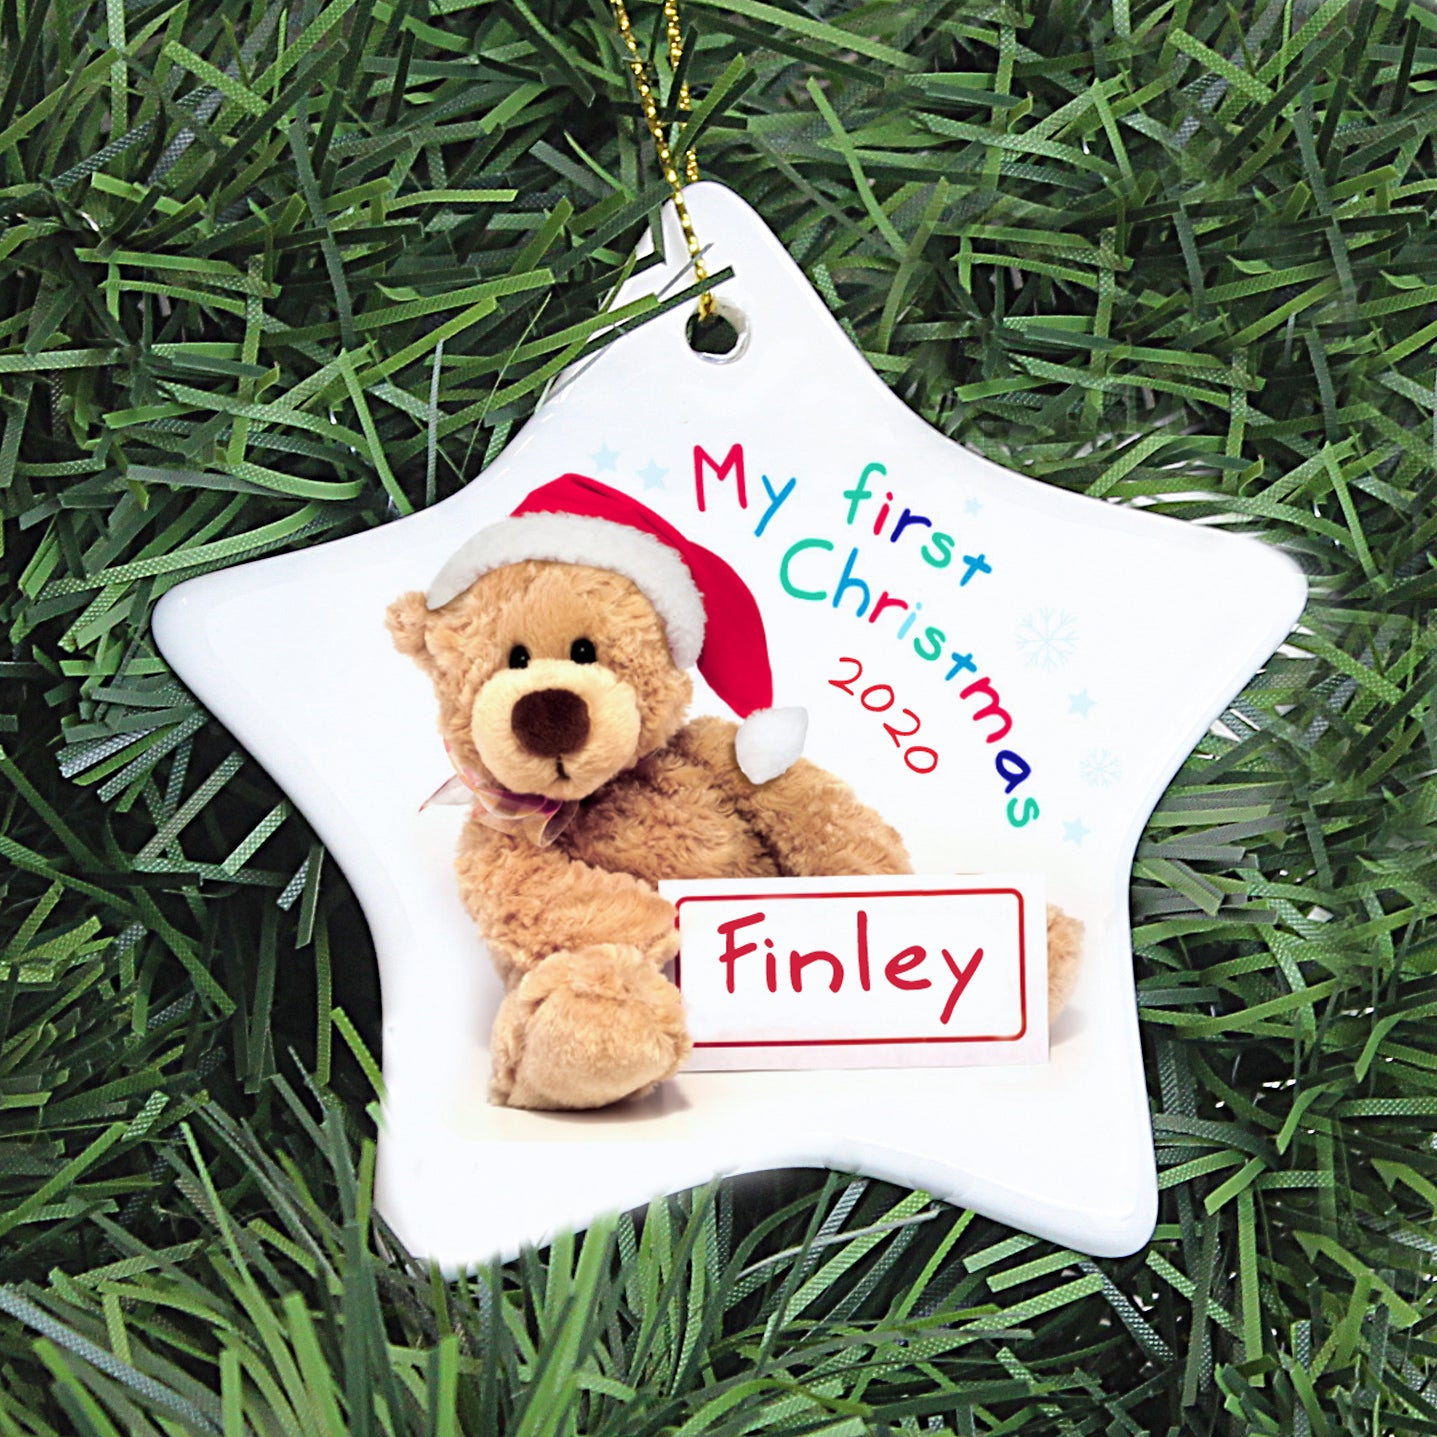 Personalised white ceramic star shaped Christmas decoration with an image of a teddy bear wearing a red and white santa hat and holding a sign which can be personalised with a name of your choice.  Next to the bear is the text 'My first Christmas' in bright multi coloured lettering and you can also add a year which will be printed below that in red.